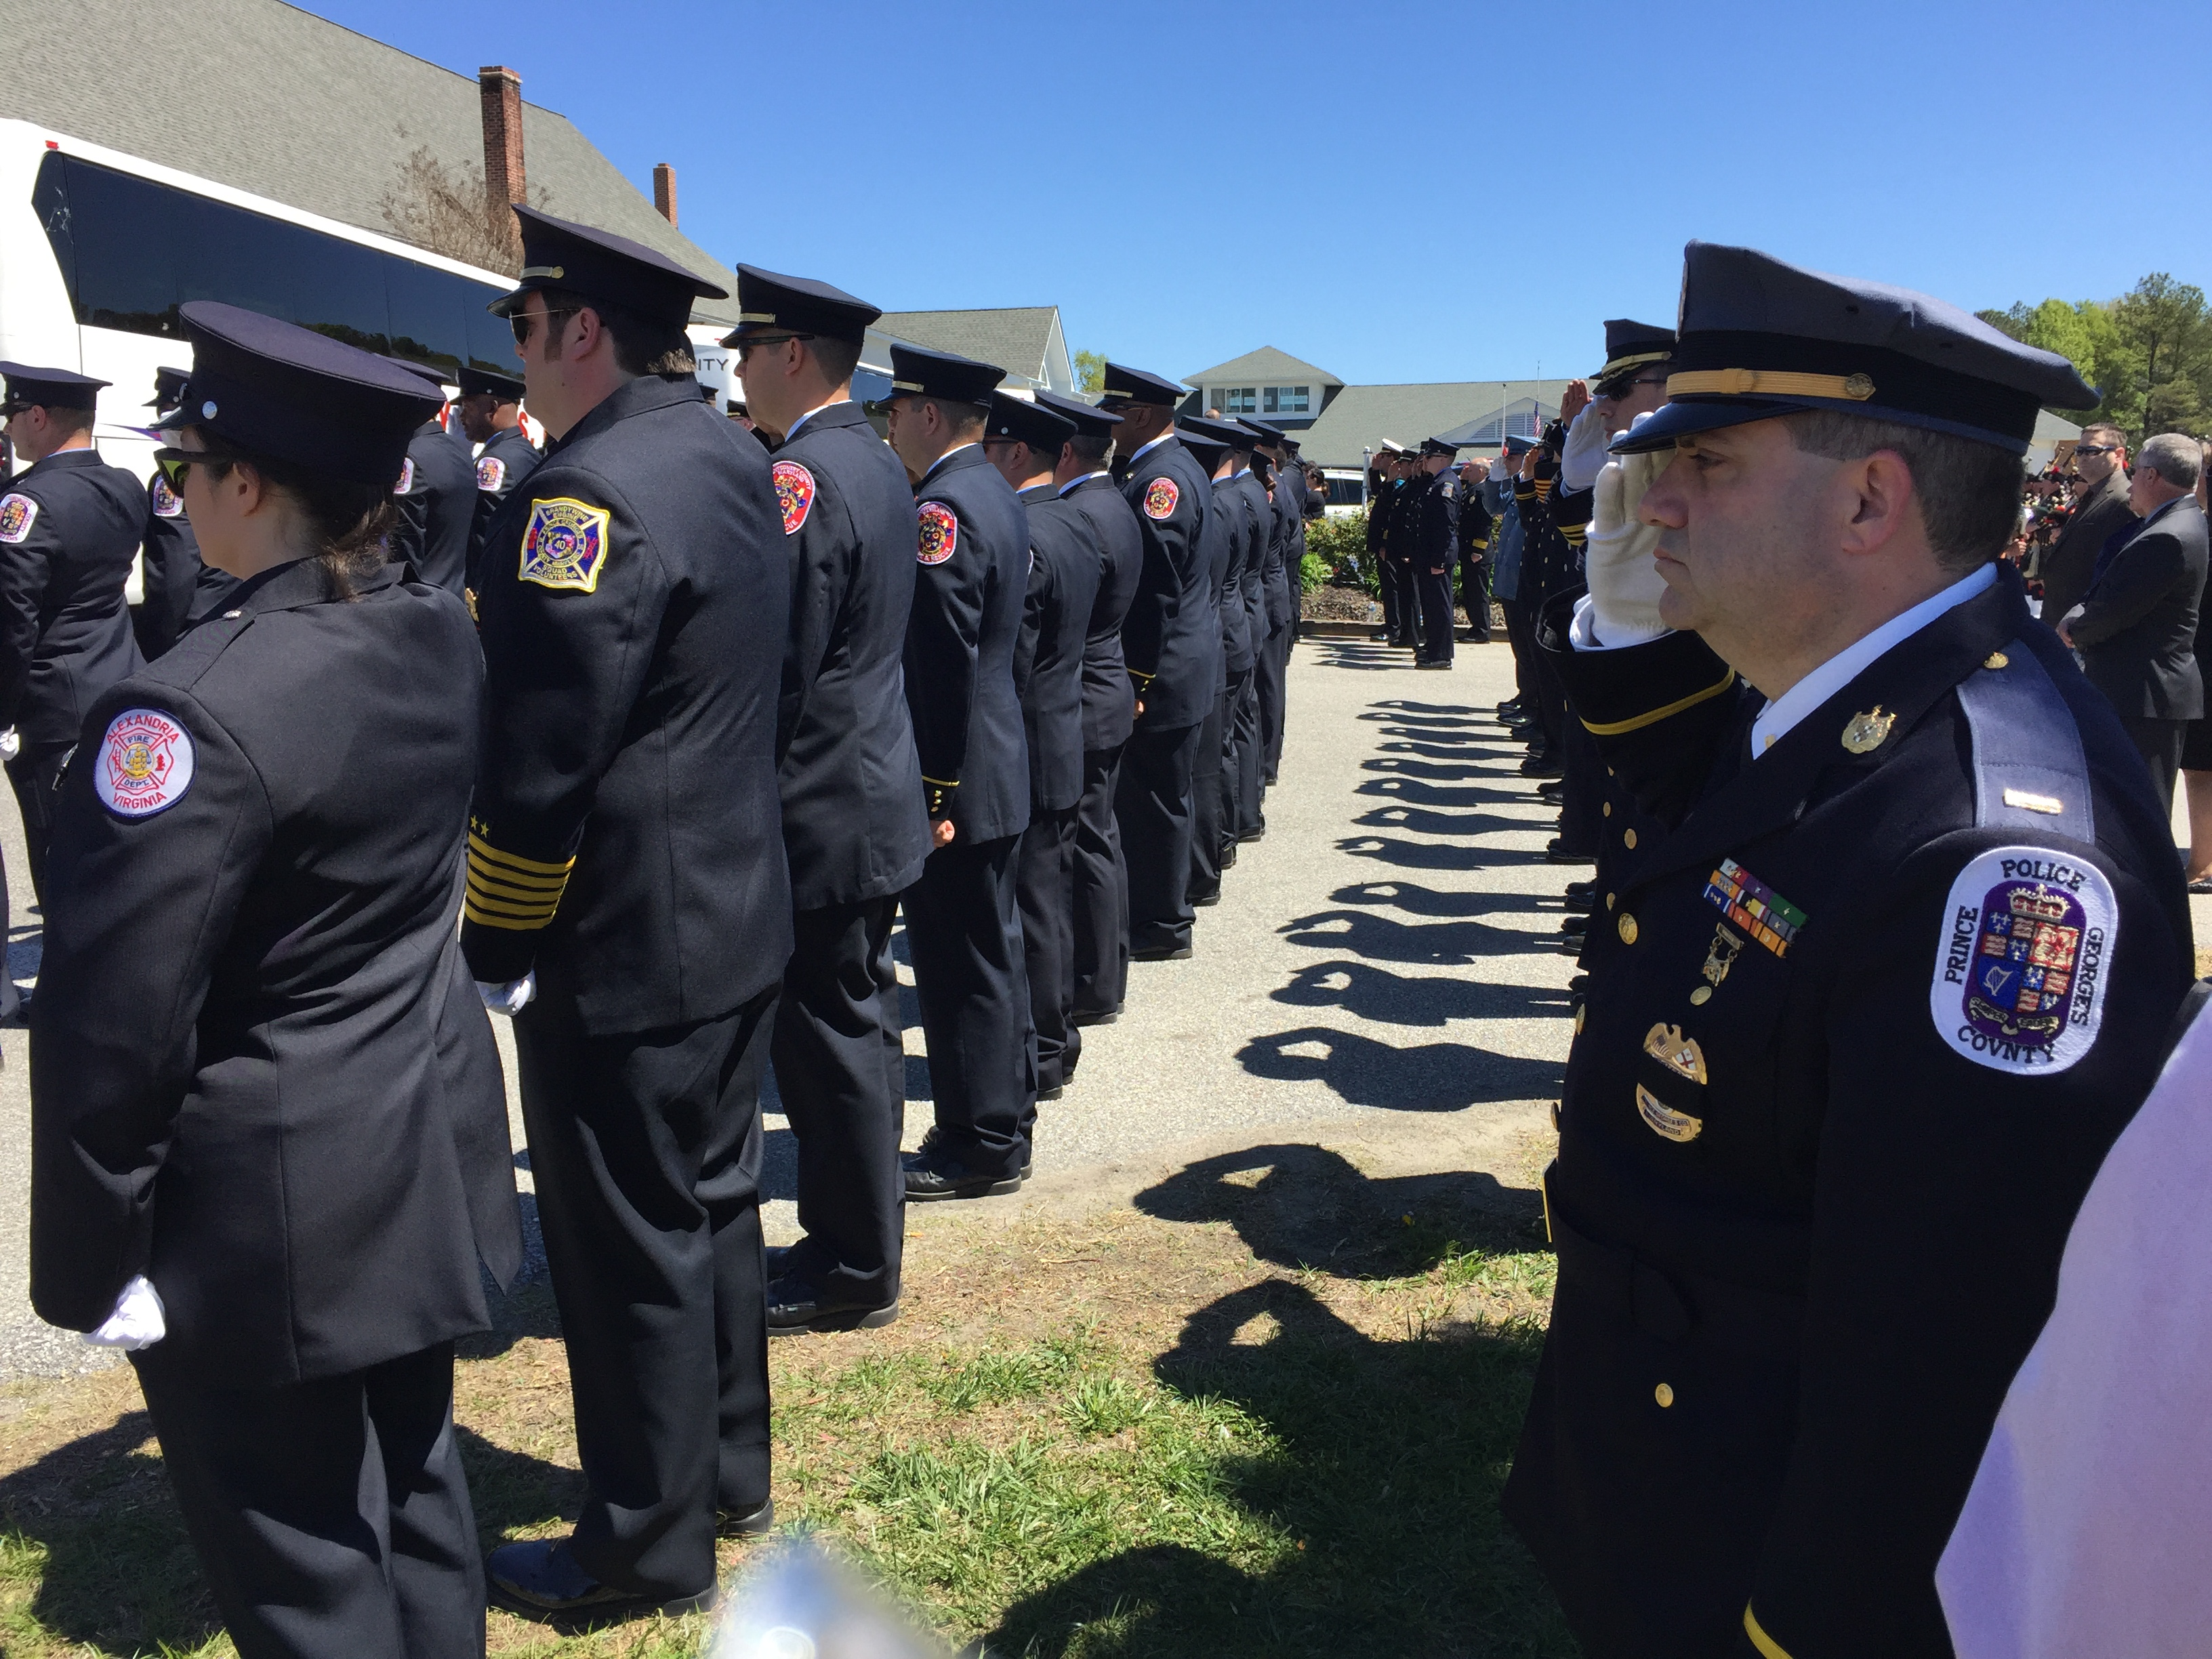 Posthumous promotion for Md. firefighter fatally shot